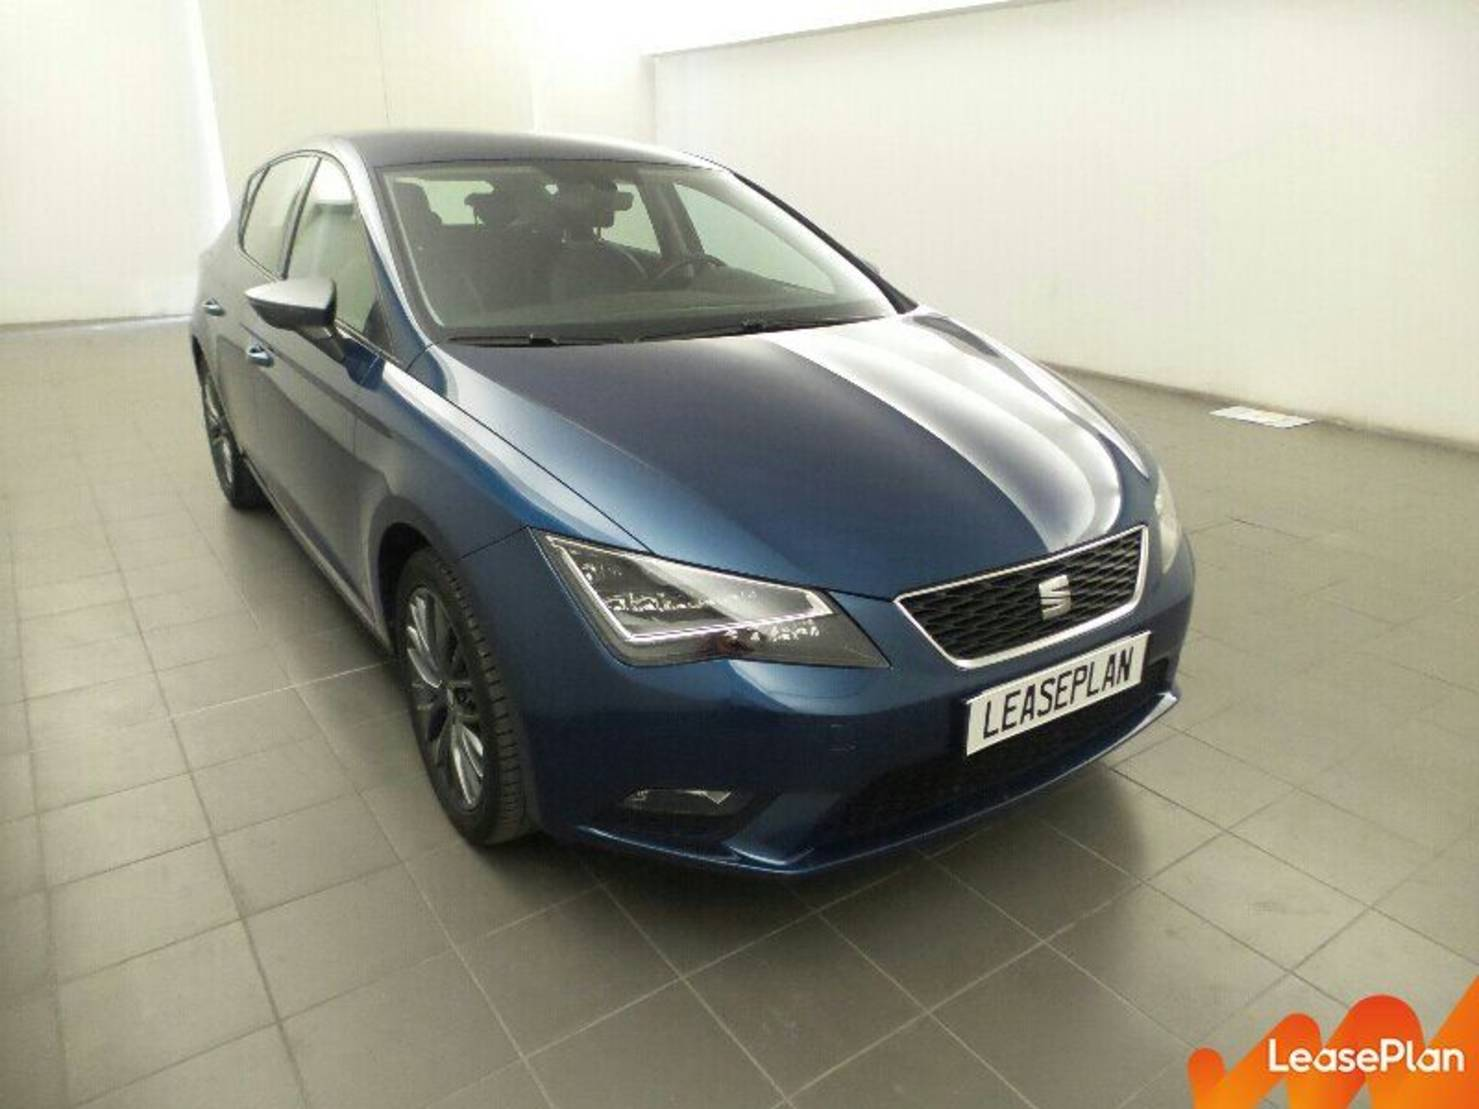 Seat Leon 1.6 TDI 110 Start/Stop, Connect DSG7 detail2